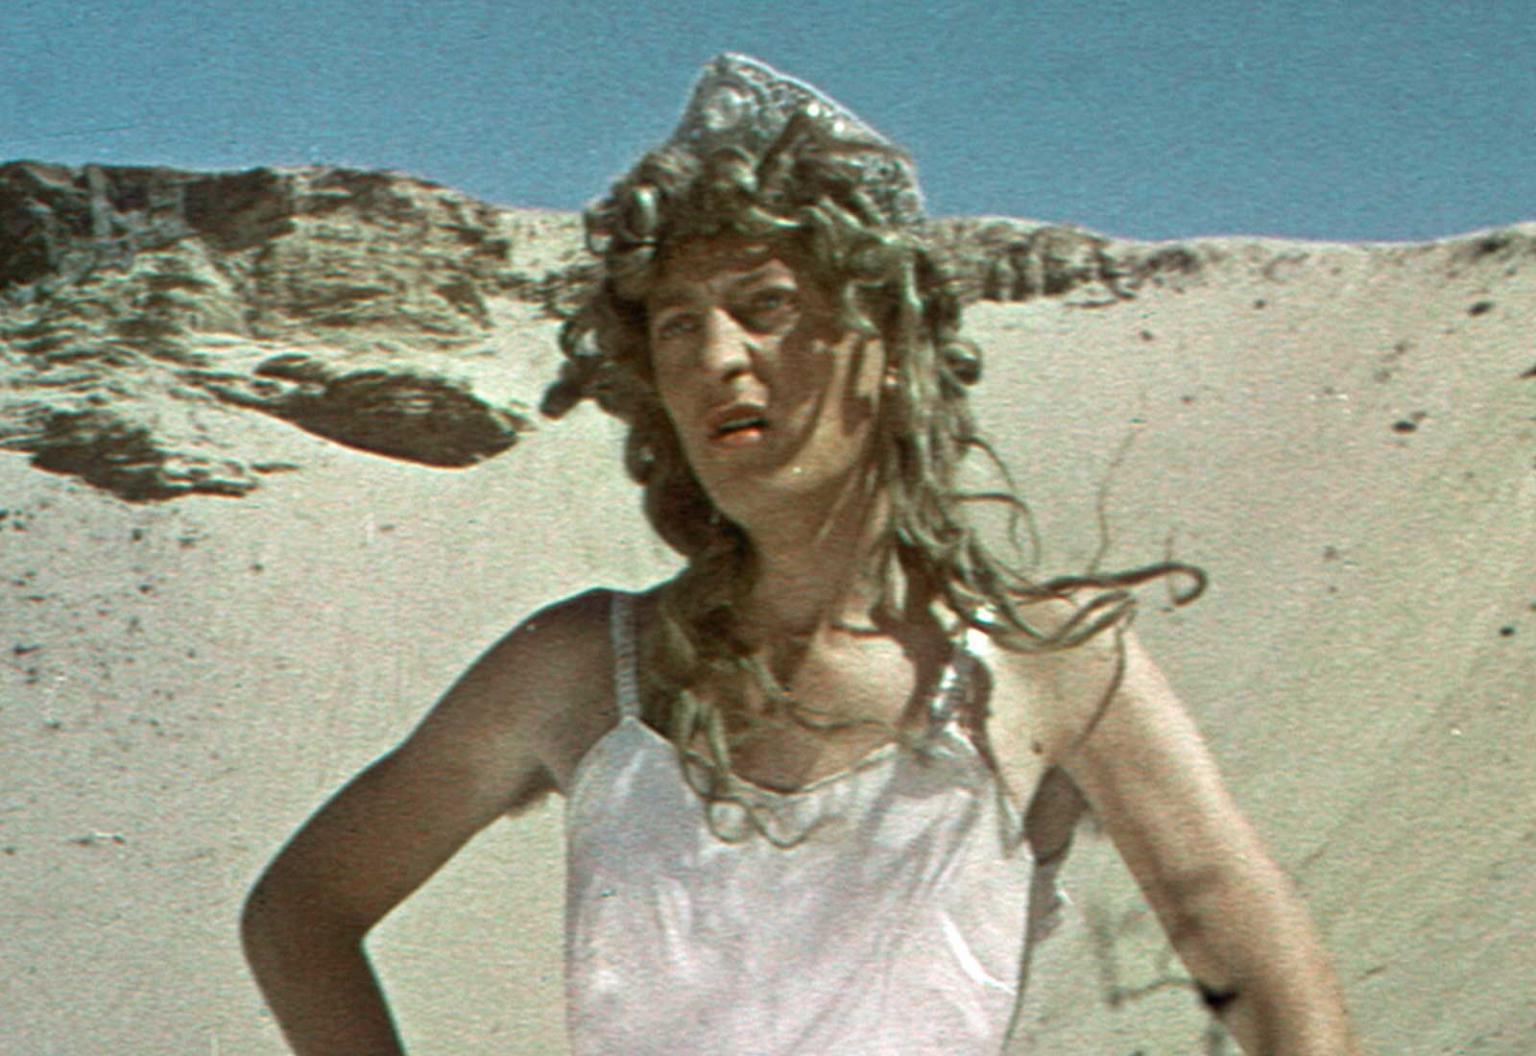 Graham Kennedy in a long blonde wig and dress standing in the desert